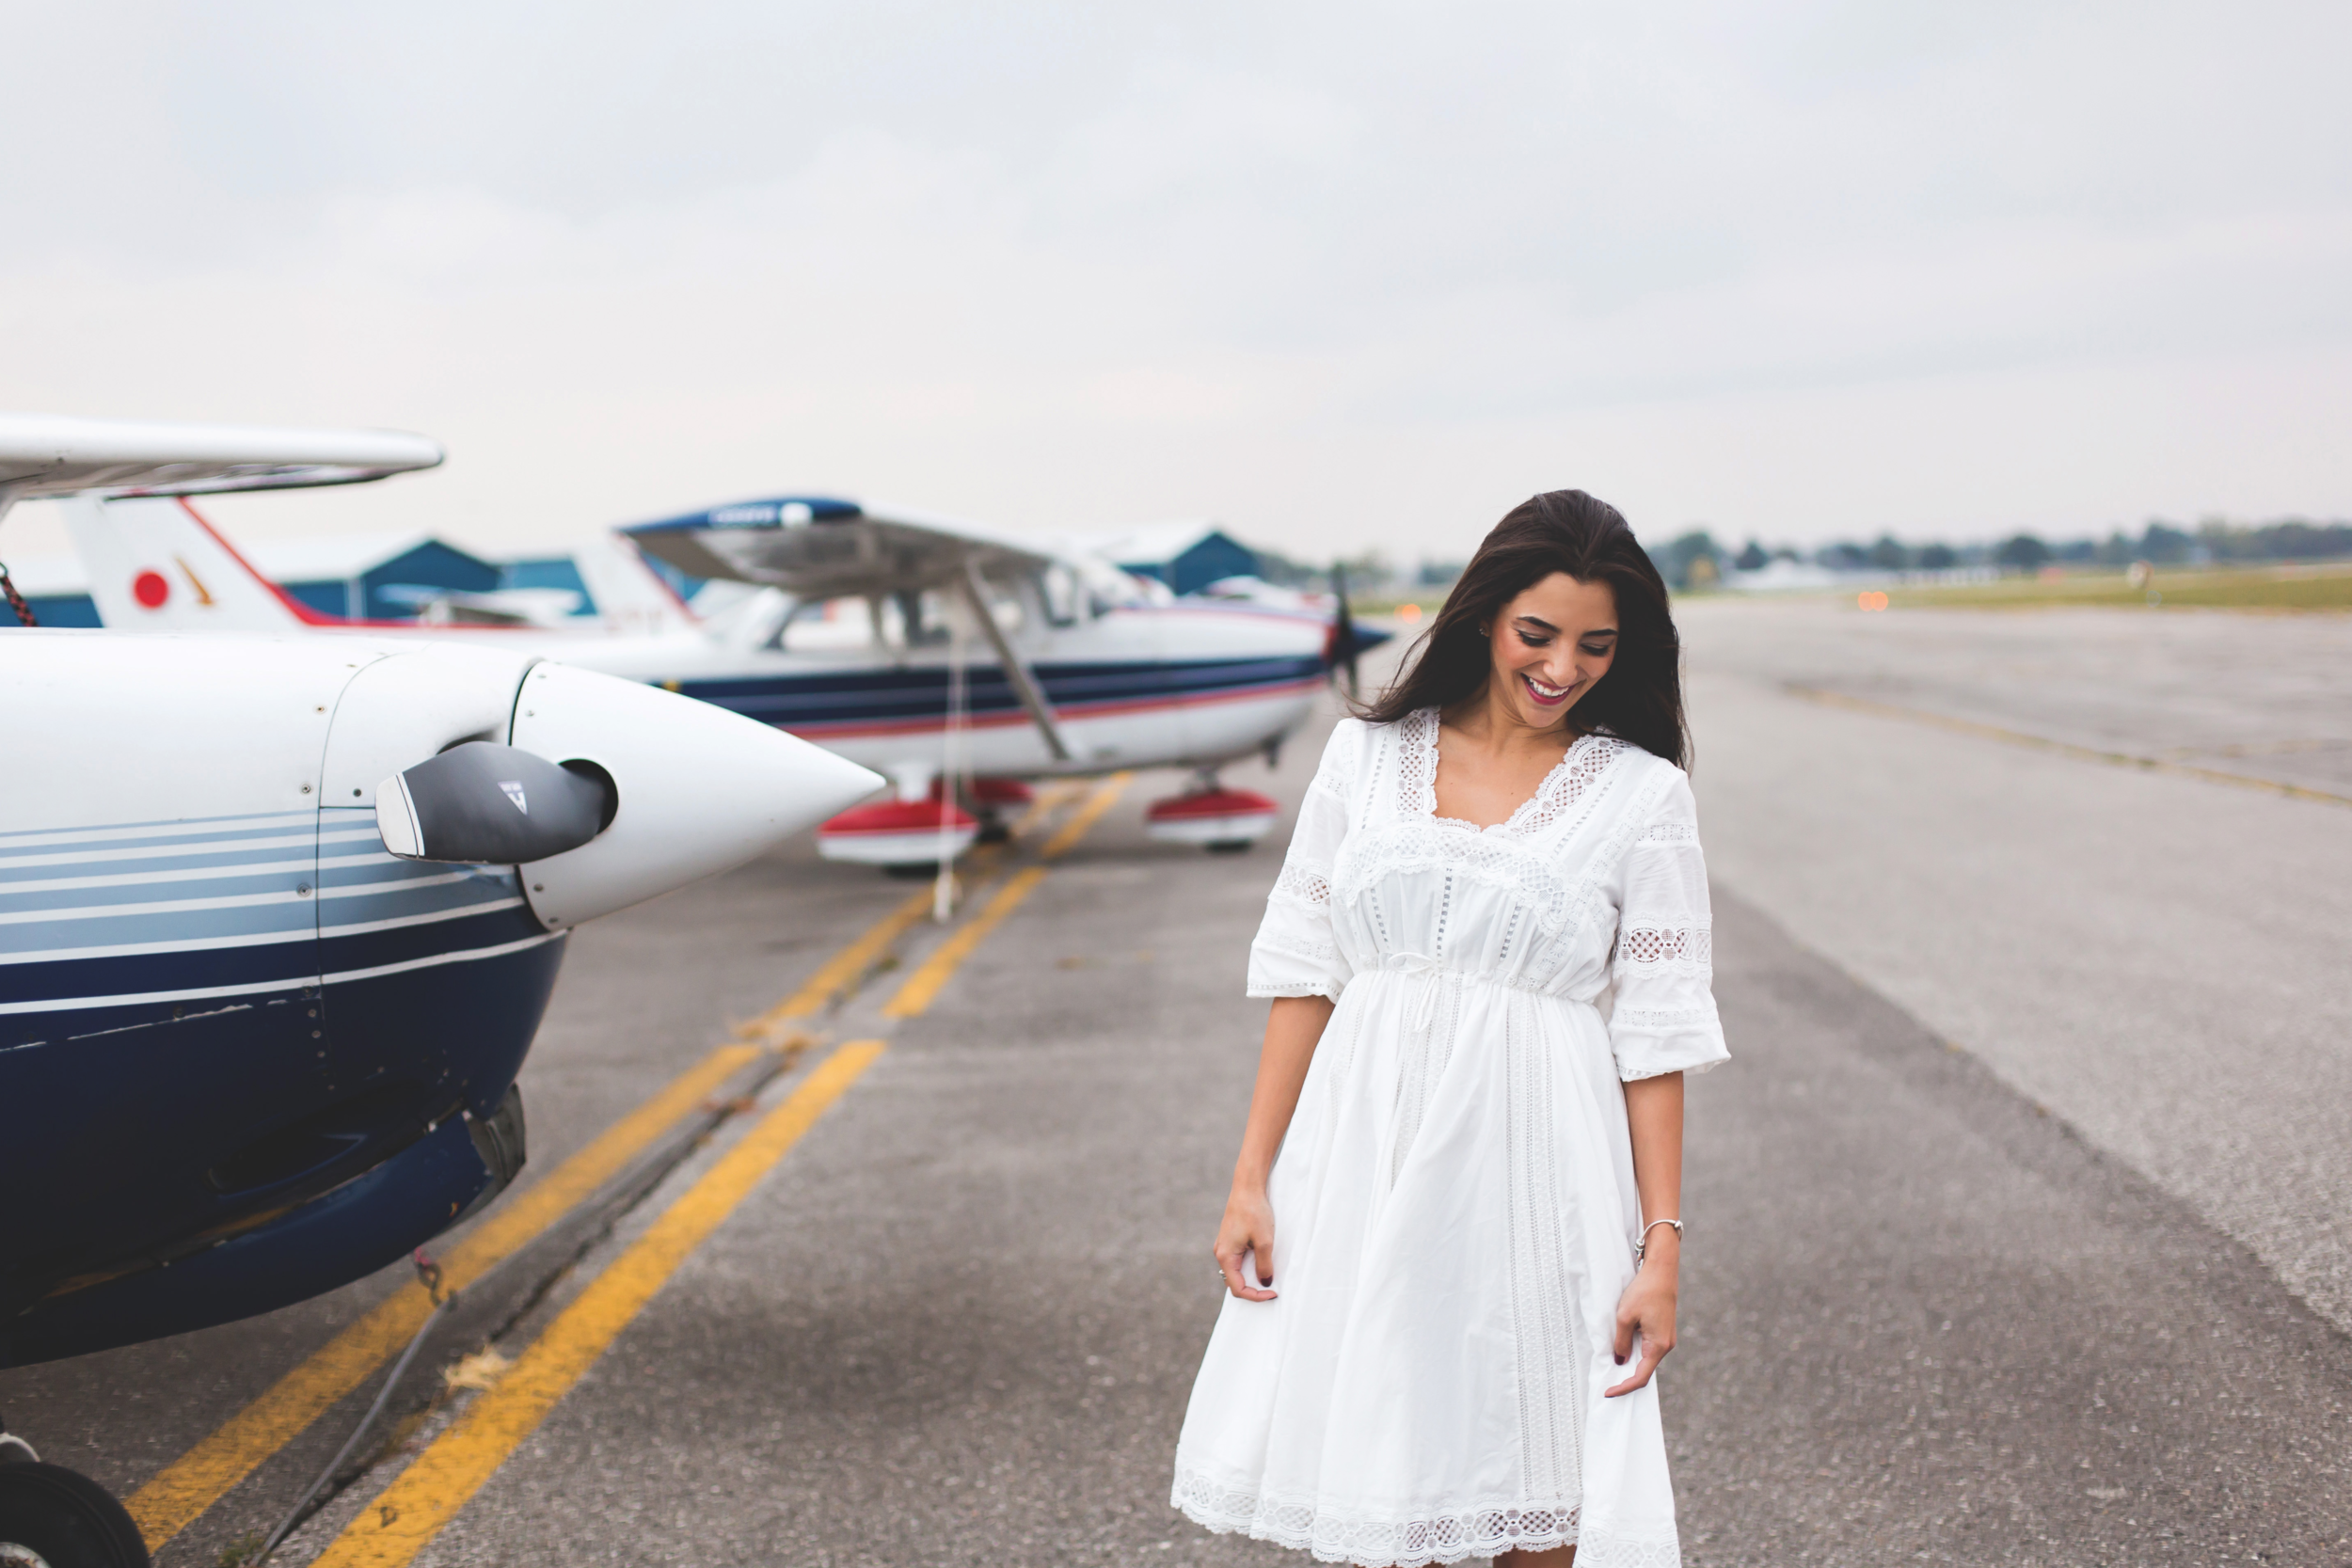 Engagement-Session-Hamilton-Burlington-Oakville-Toronto-Niagara-Wedding-Photographer-Engaged-Photography-Brantford-Airport-HamOnt-Engaged-Moments-by-Lauren-Photo-Image-31.png